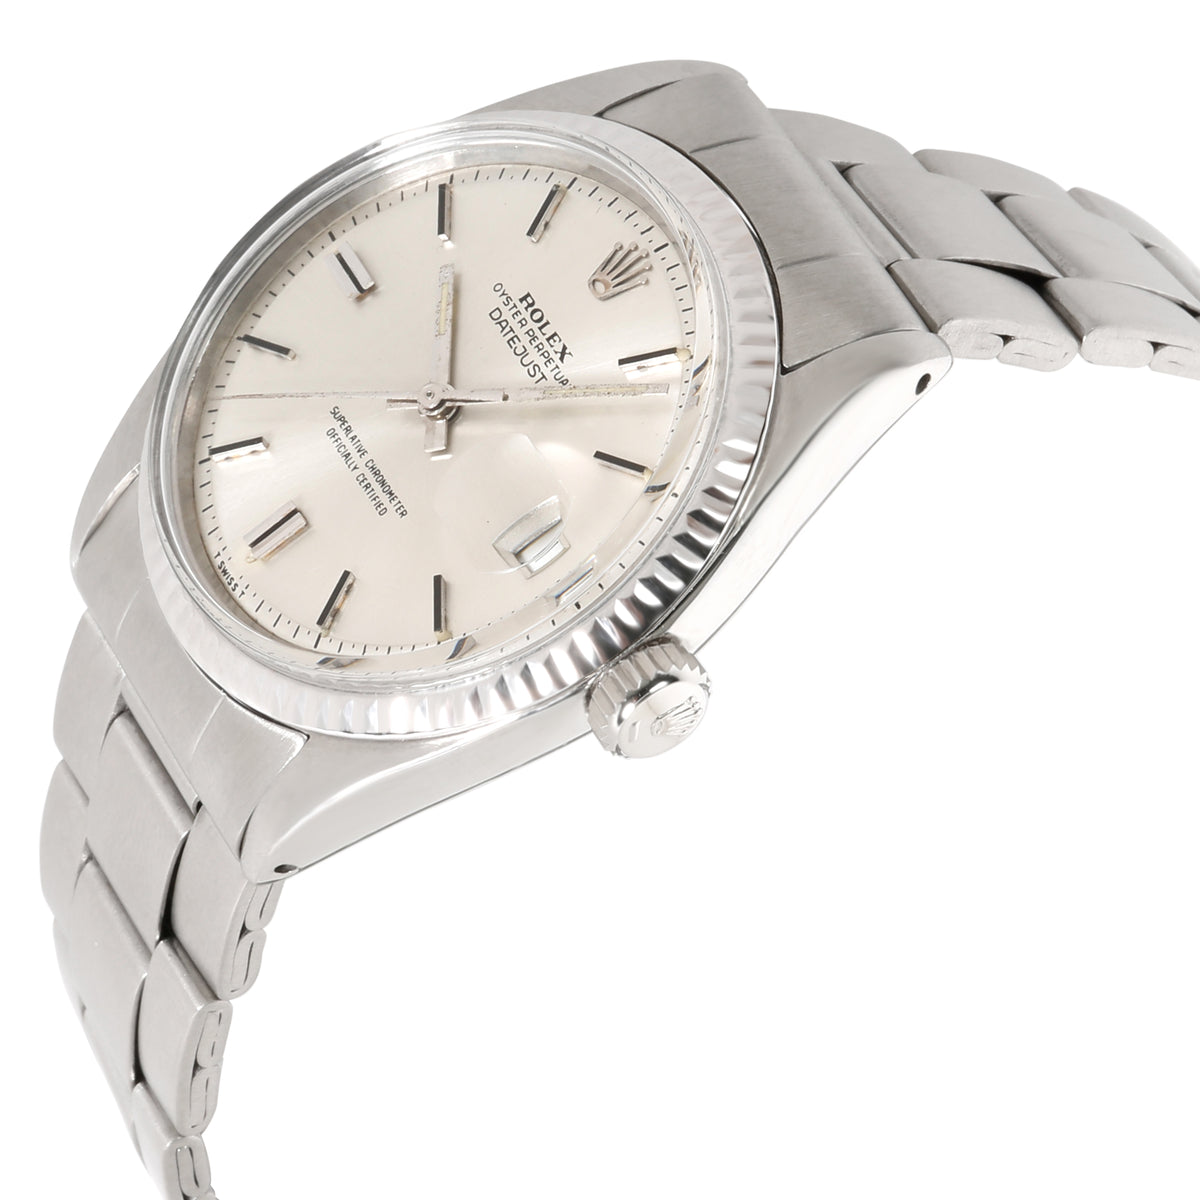 Rolex Datejust 1601 Men's Watch in  Stainless Steel